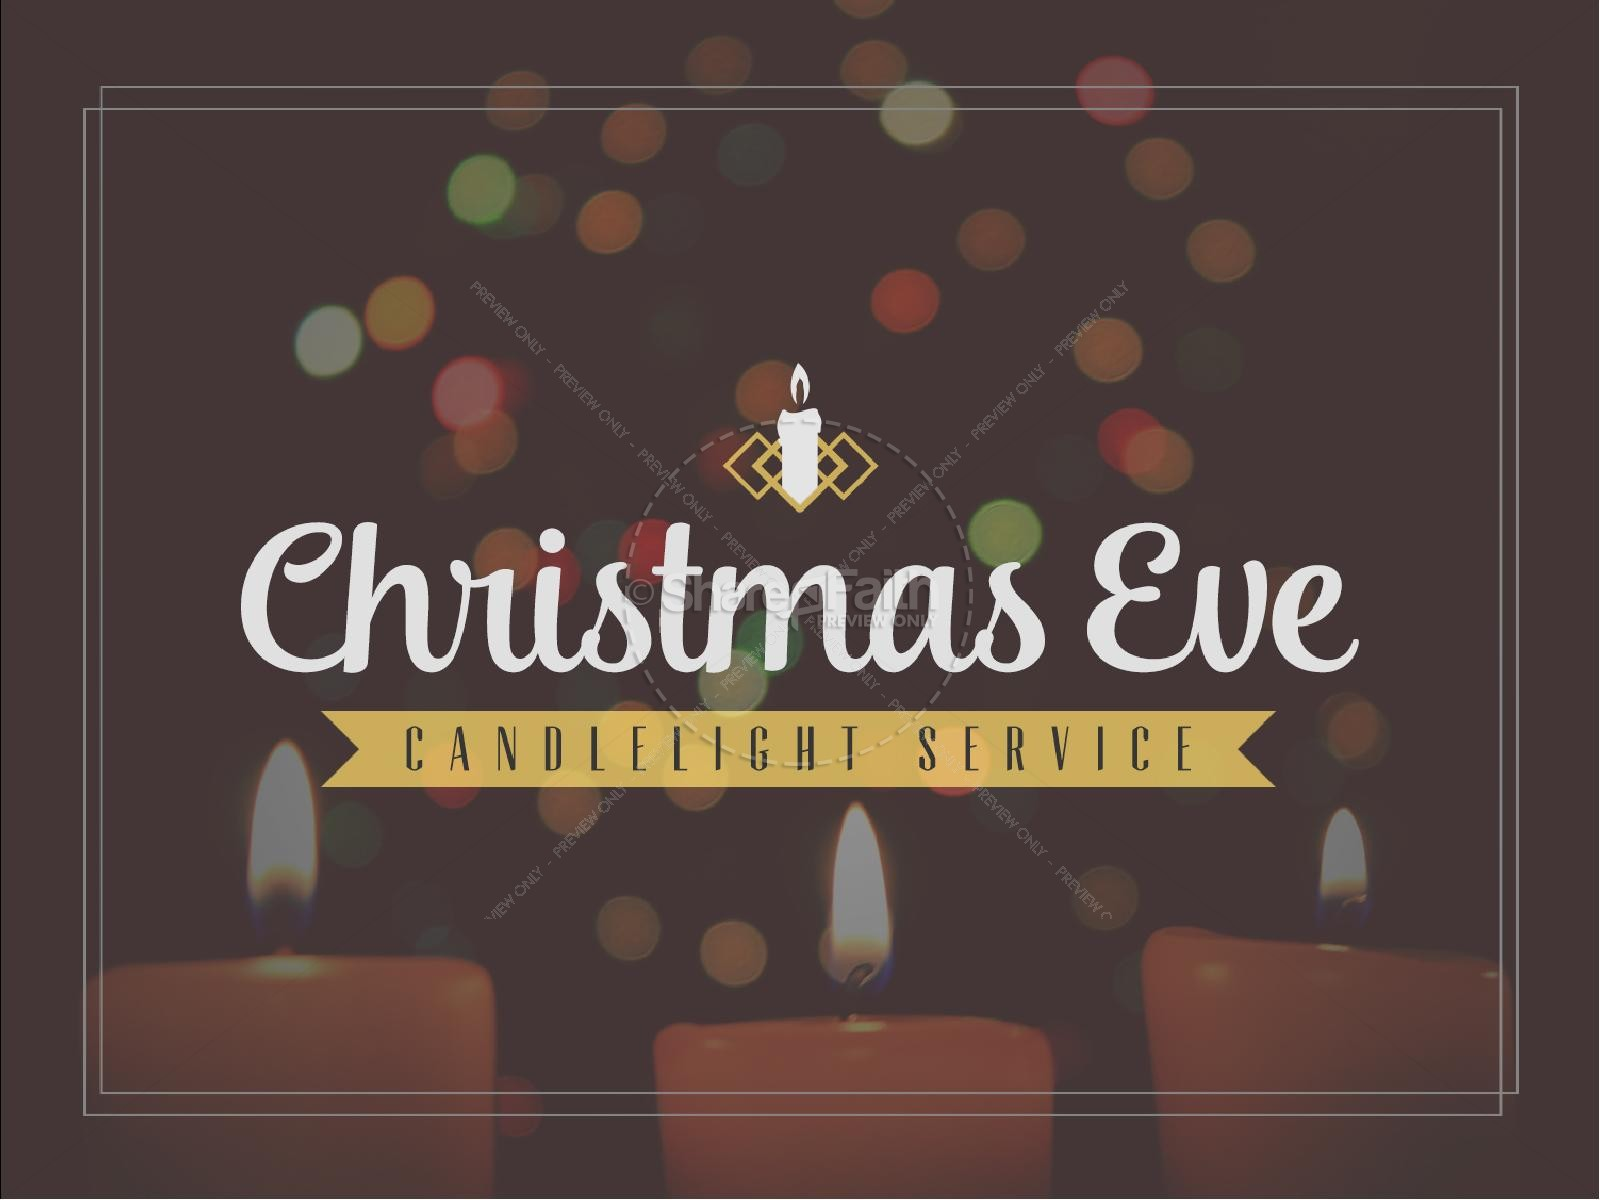 Christmas eve worship service ideas - Christmas Eve Candlelight Service Ministry Powerpoint